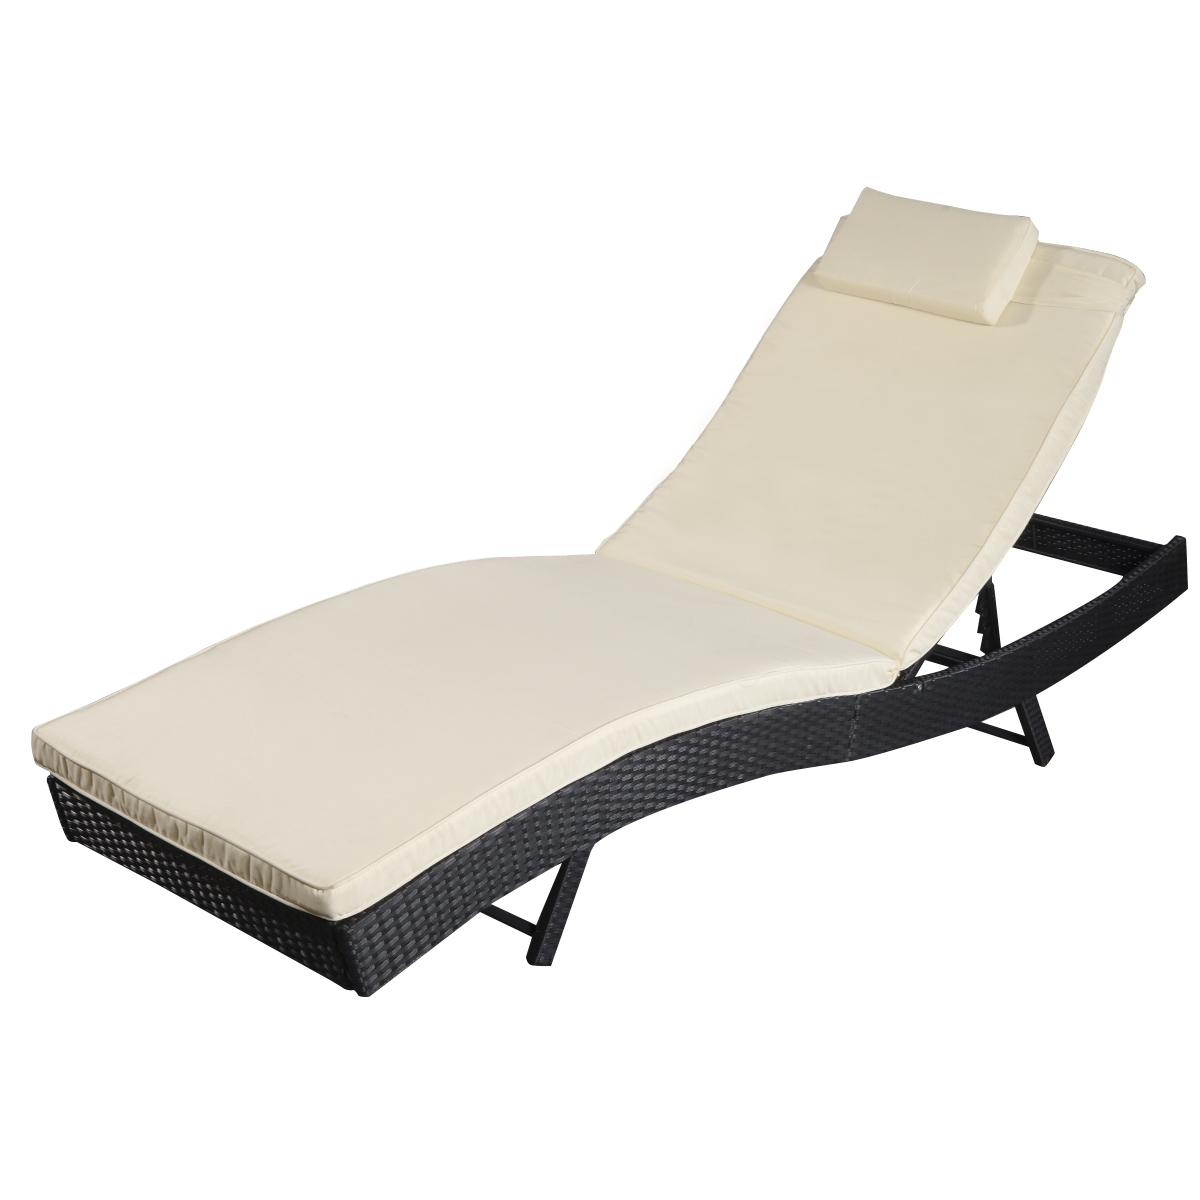 Preferred Pool Chaise Lounge Chairs Inside Costway Adjustable Pool Chaise Lounge Chair Outdoor Patio (View 12 of 15)